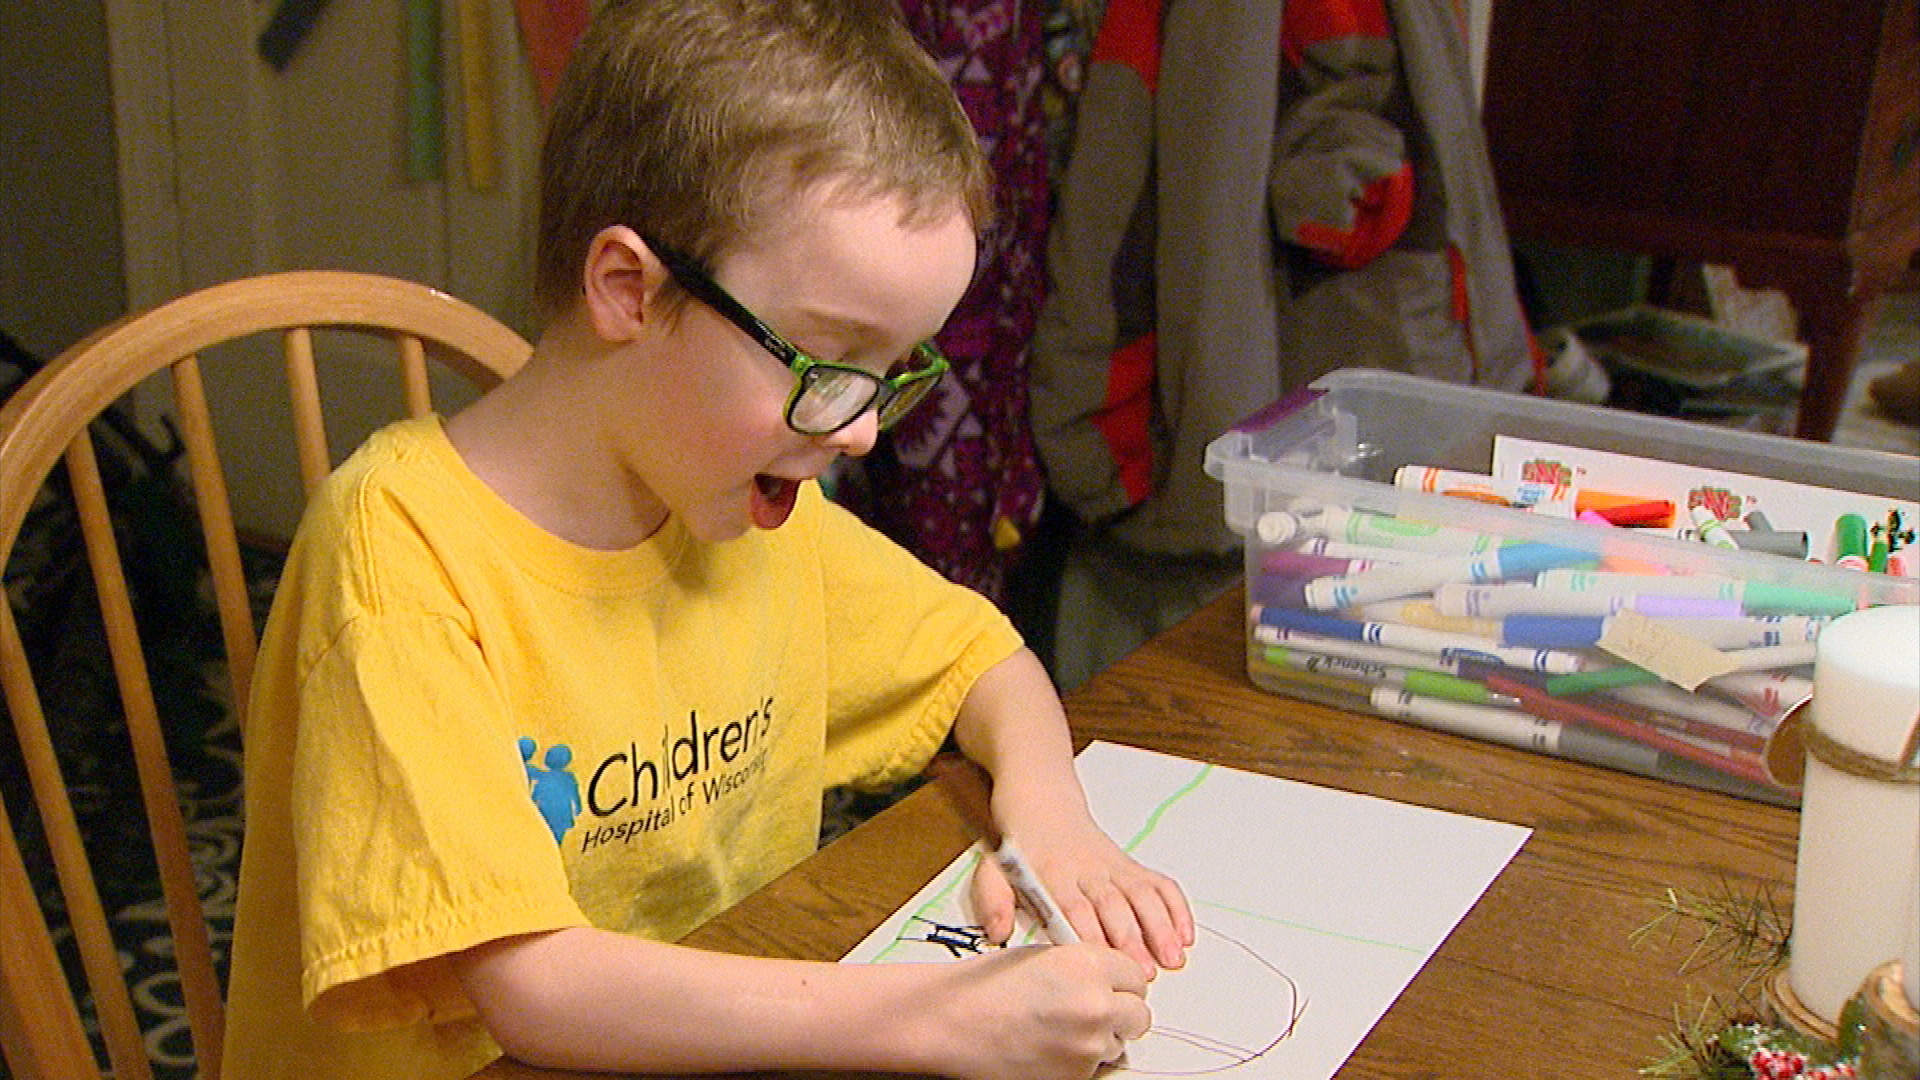 David Gelb drawing a picture. The 7-year-old Allouez boy is raising donations through his artwork for Children's Hospital of Wisconsin. (WLUK/Jesse Basinski)<p></p>